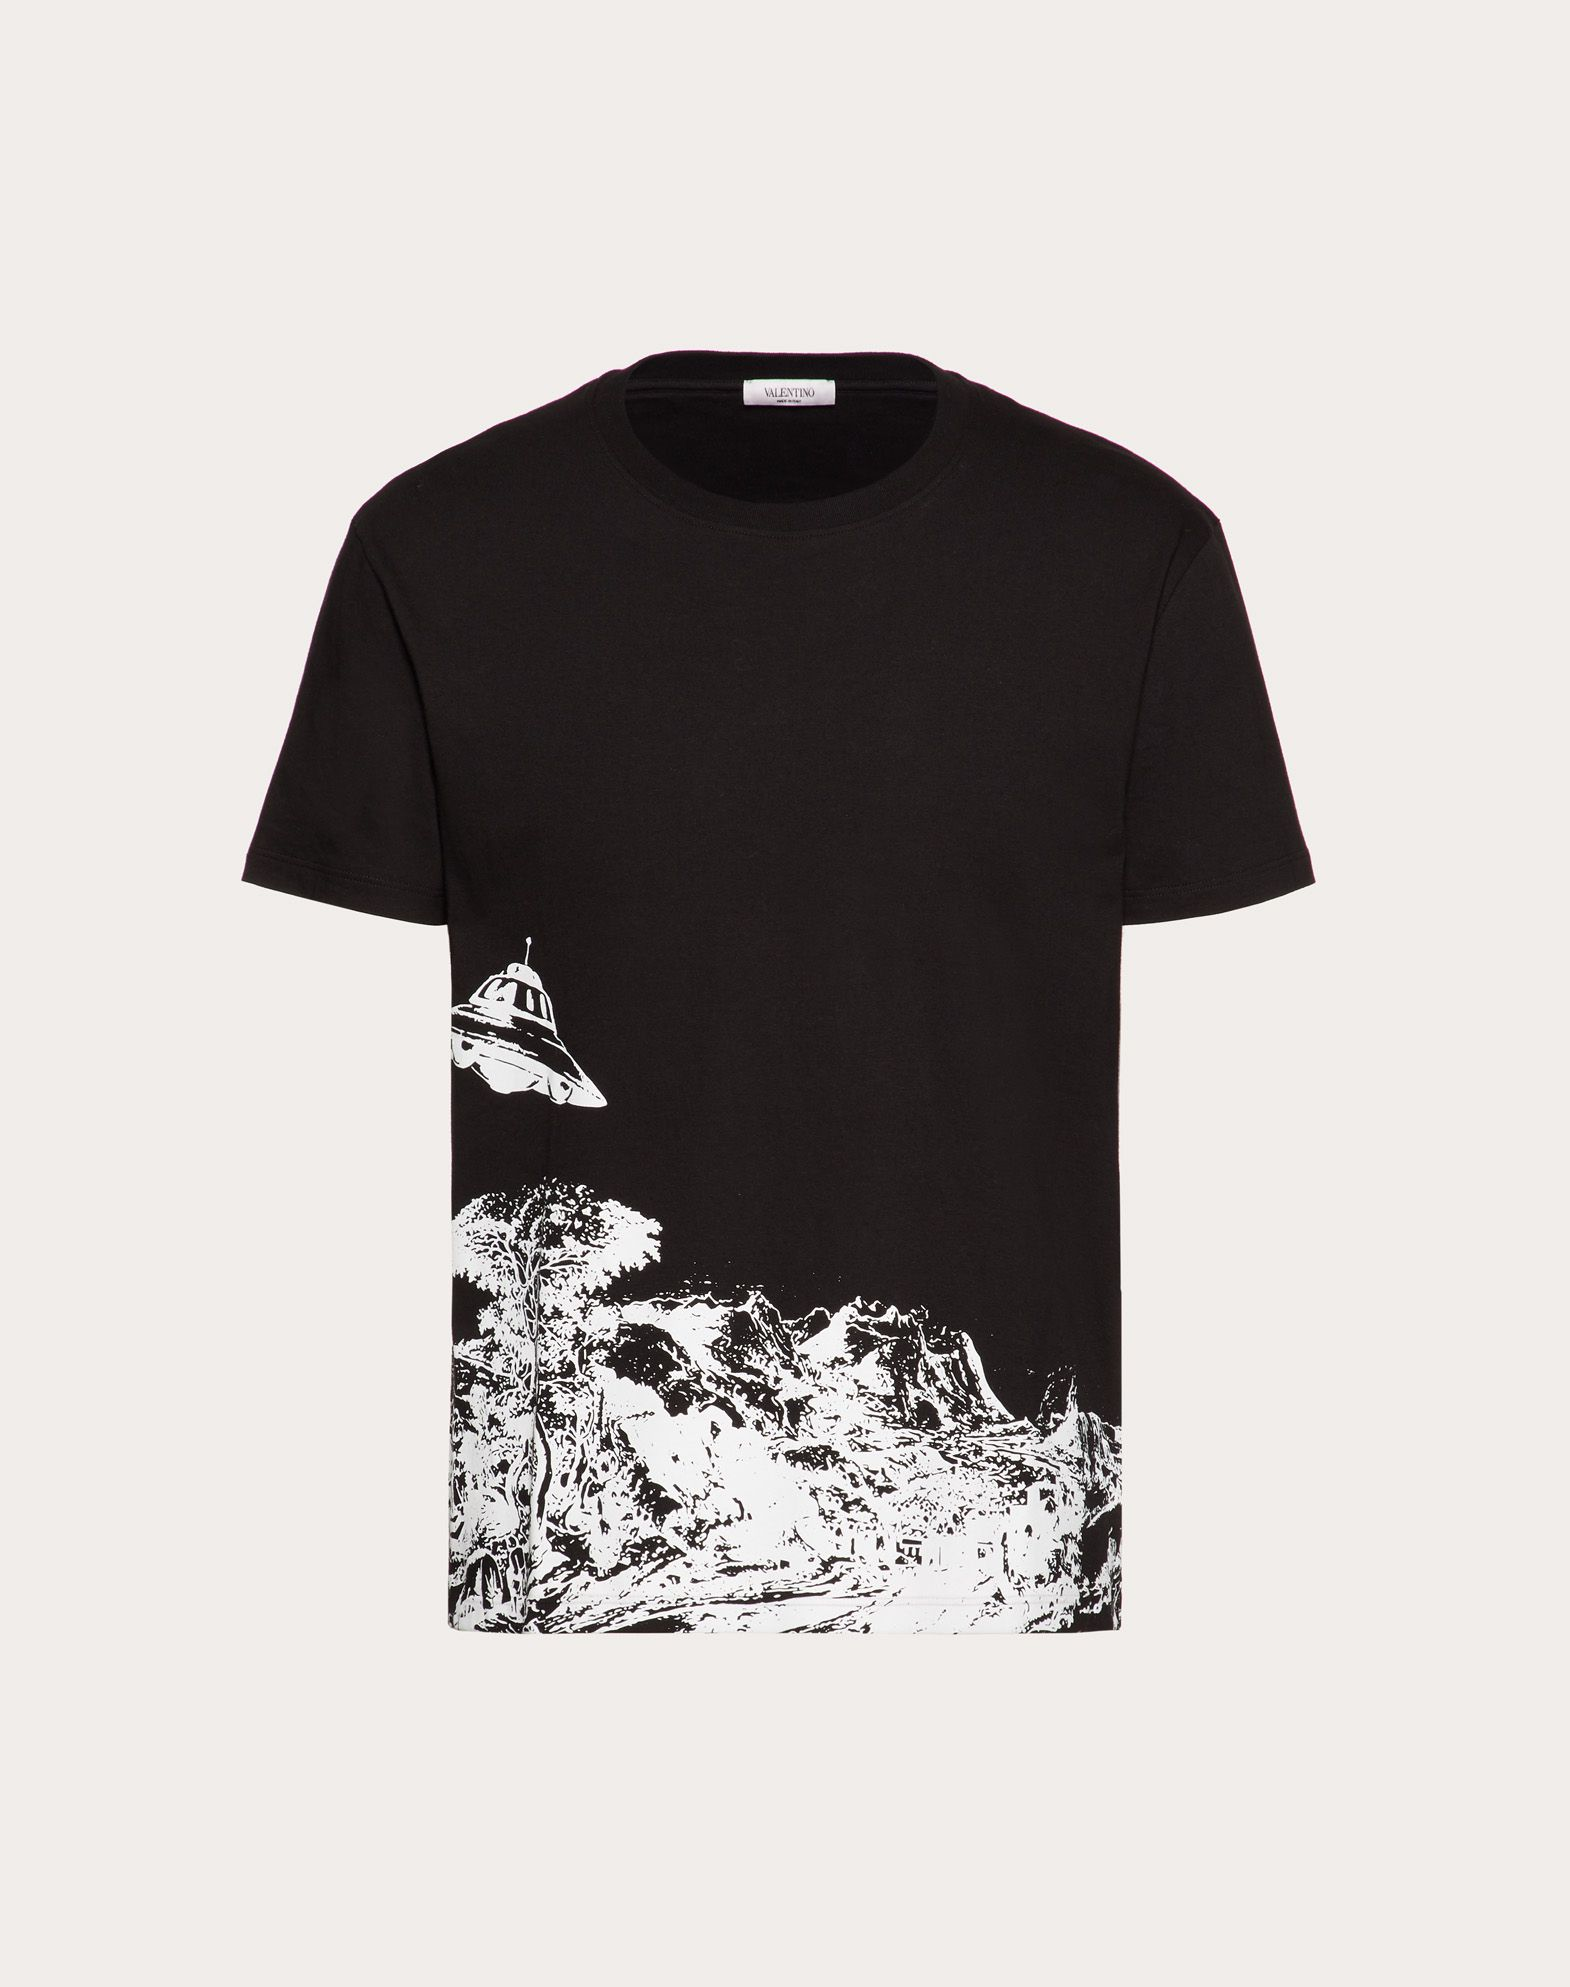 T-SHIRT WITH TIME TRAVELLER PRINT